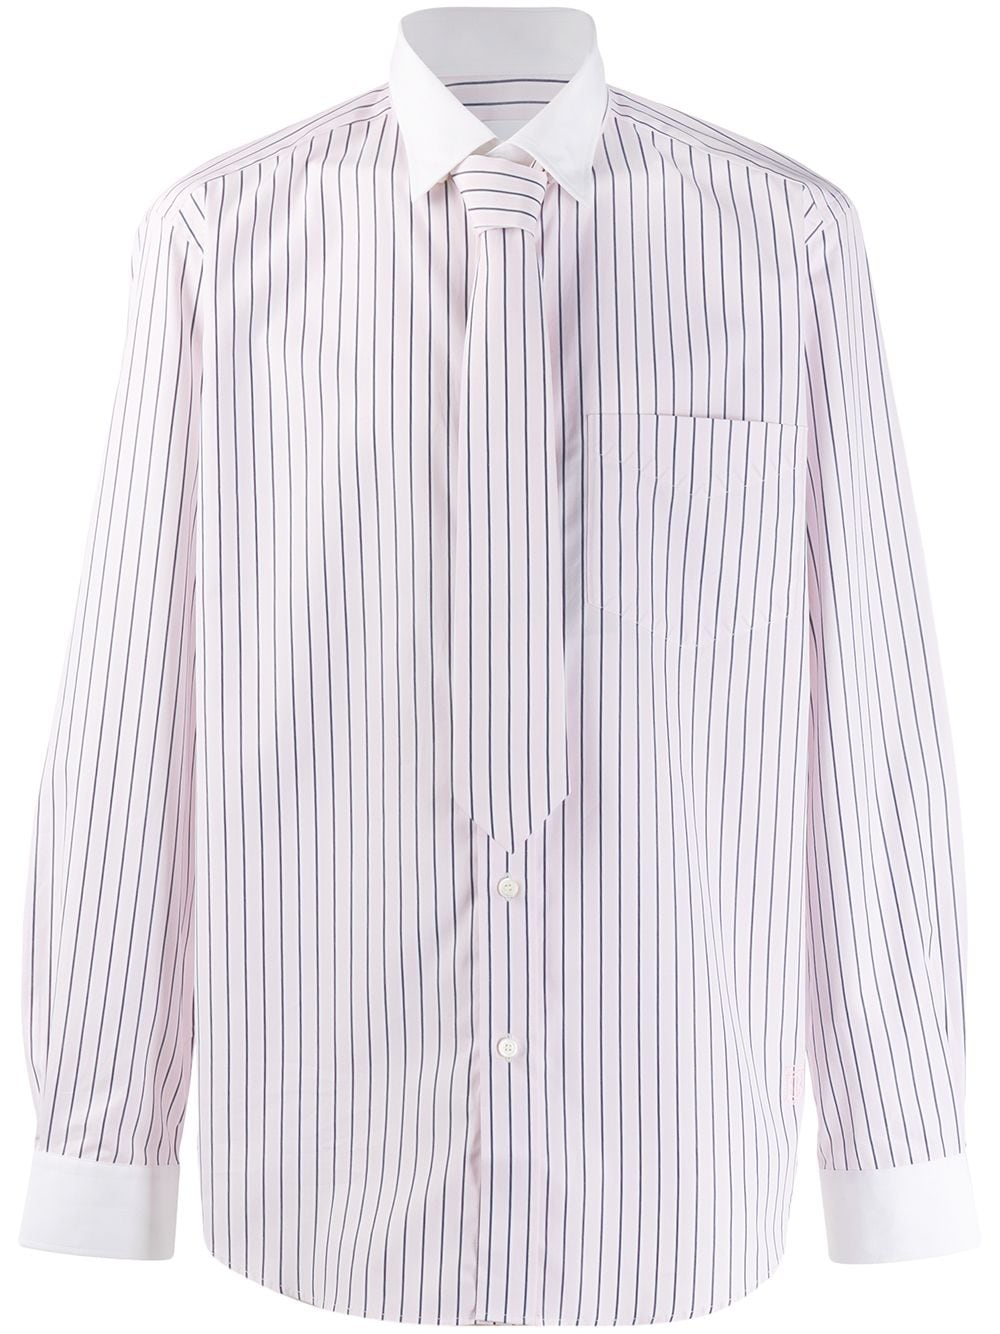 Burberry classic fit monogram motif striped shirt - PINK von Burberry